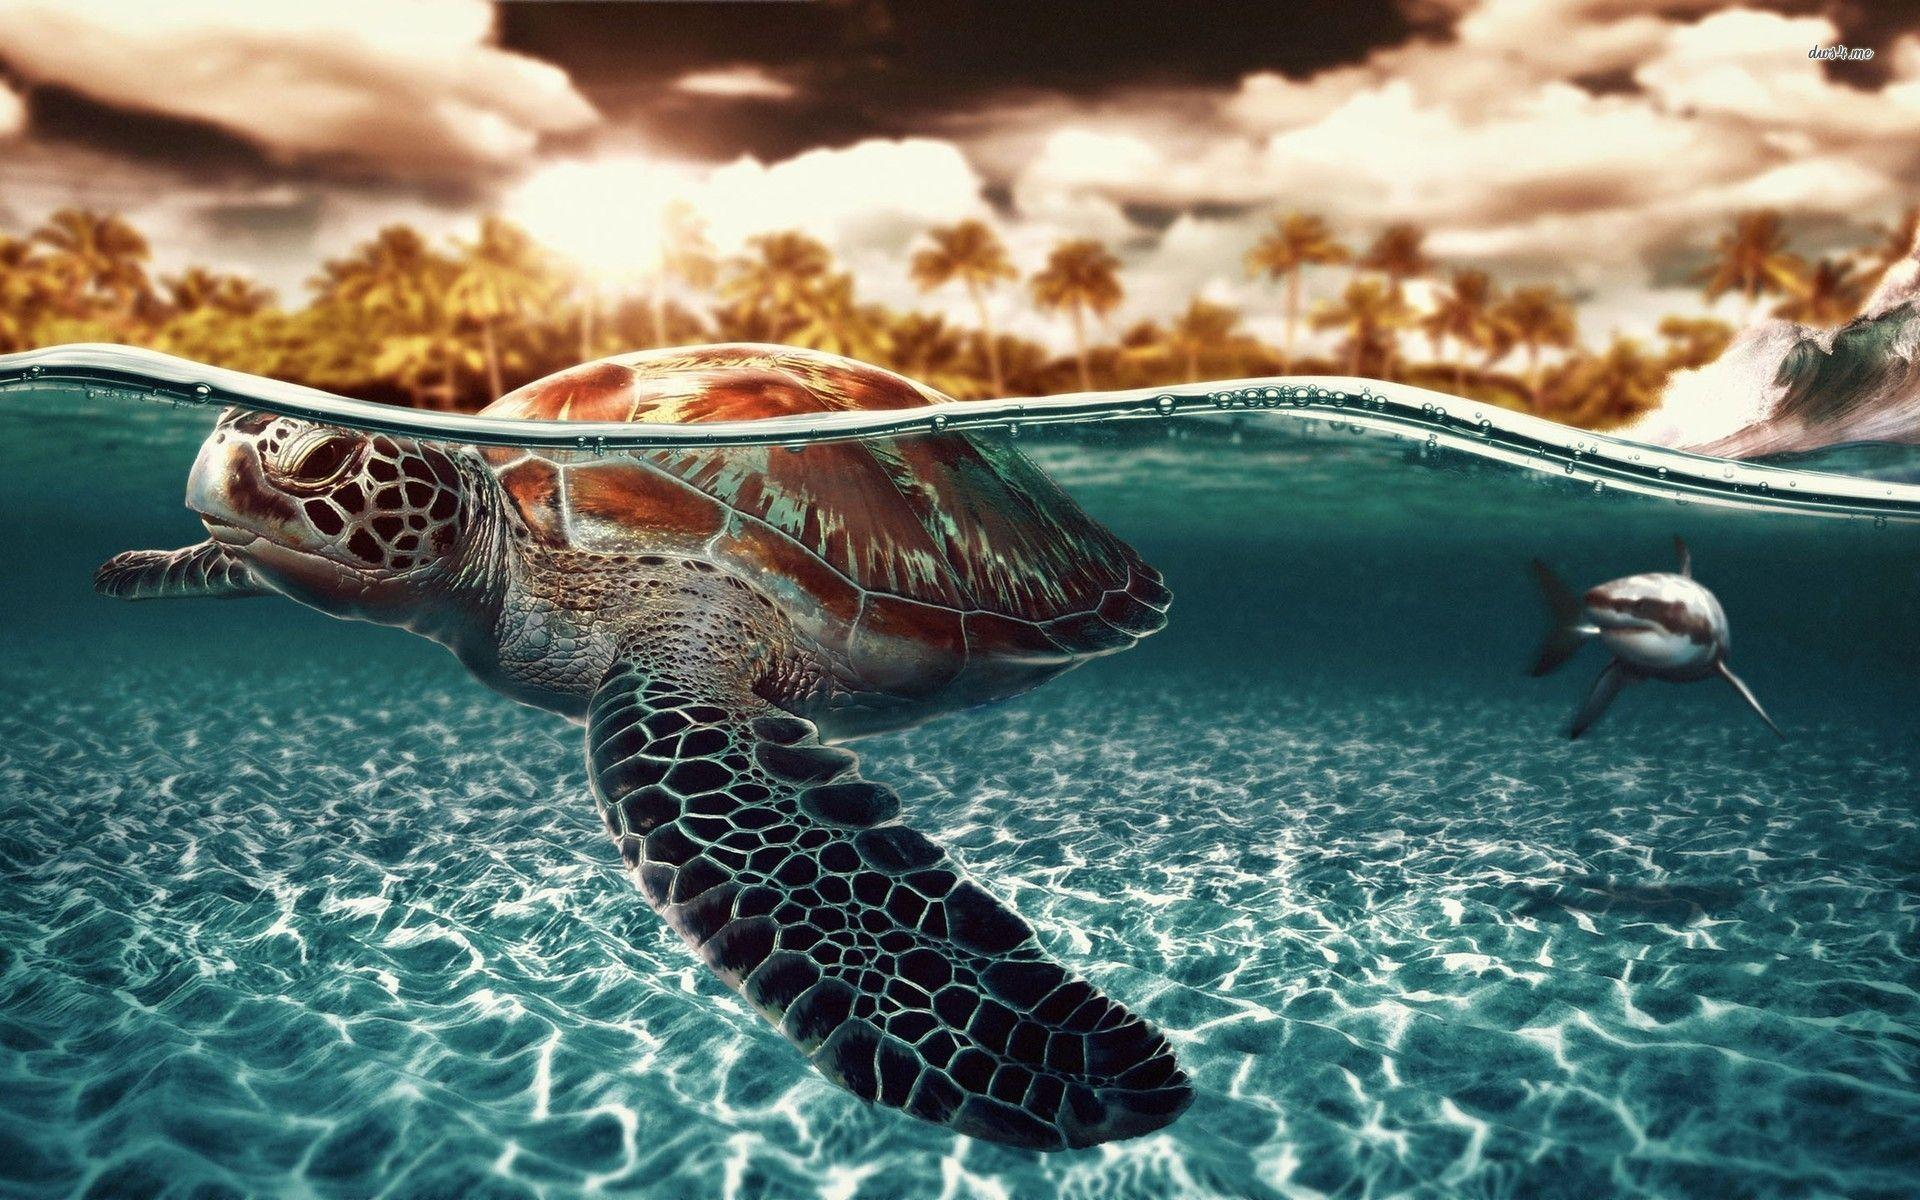 Funny 3d Animal Turtle Wallpapers Hd: Sea Turtles Wallpapers